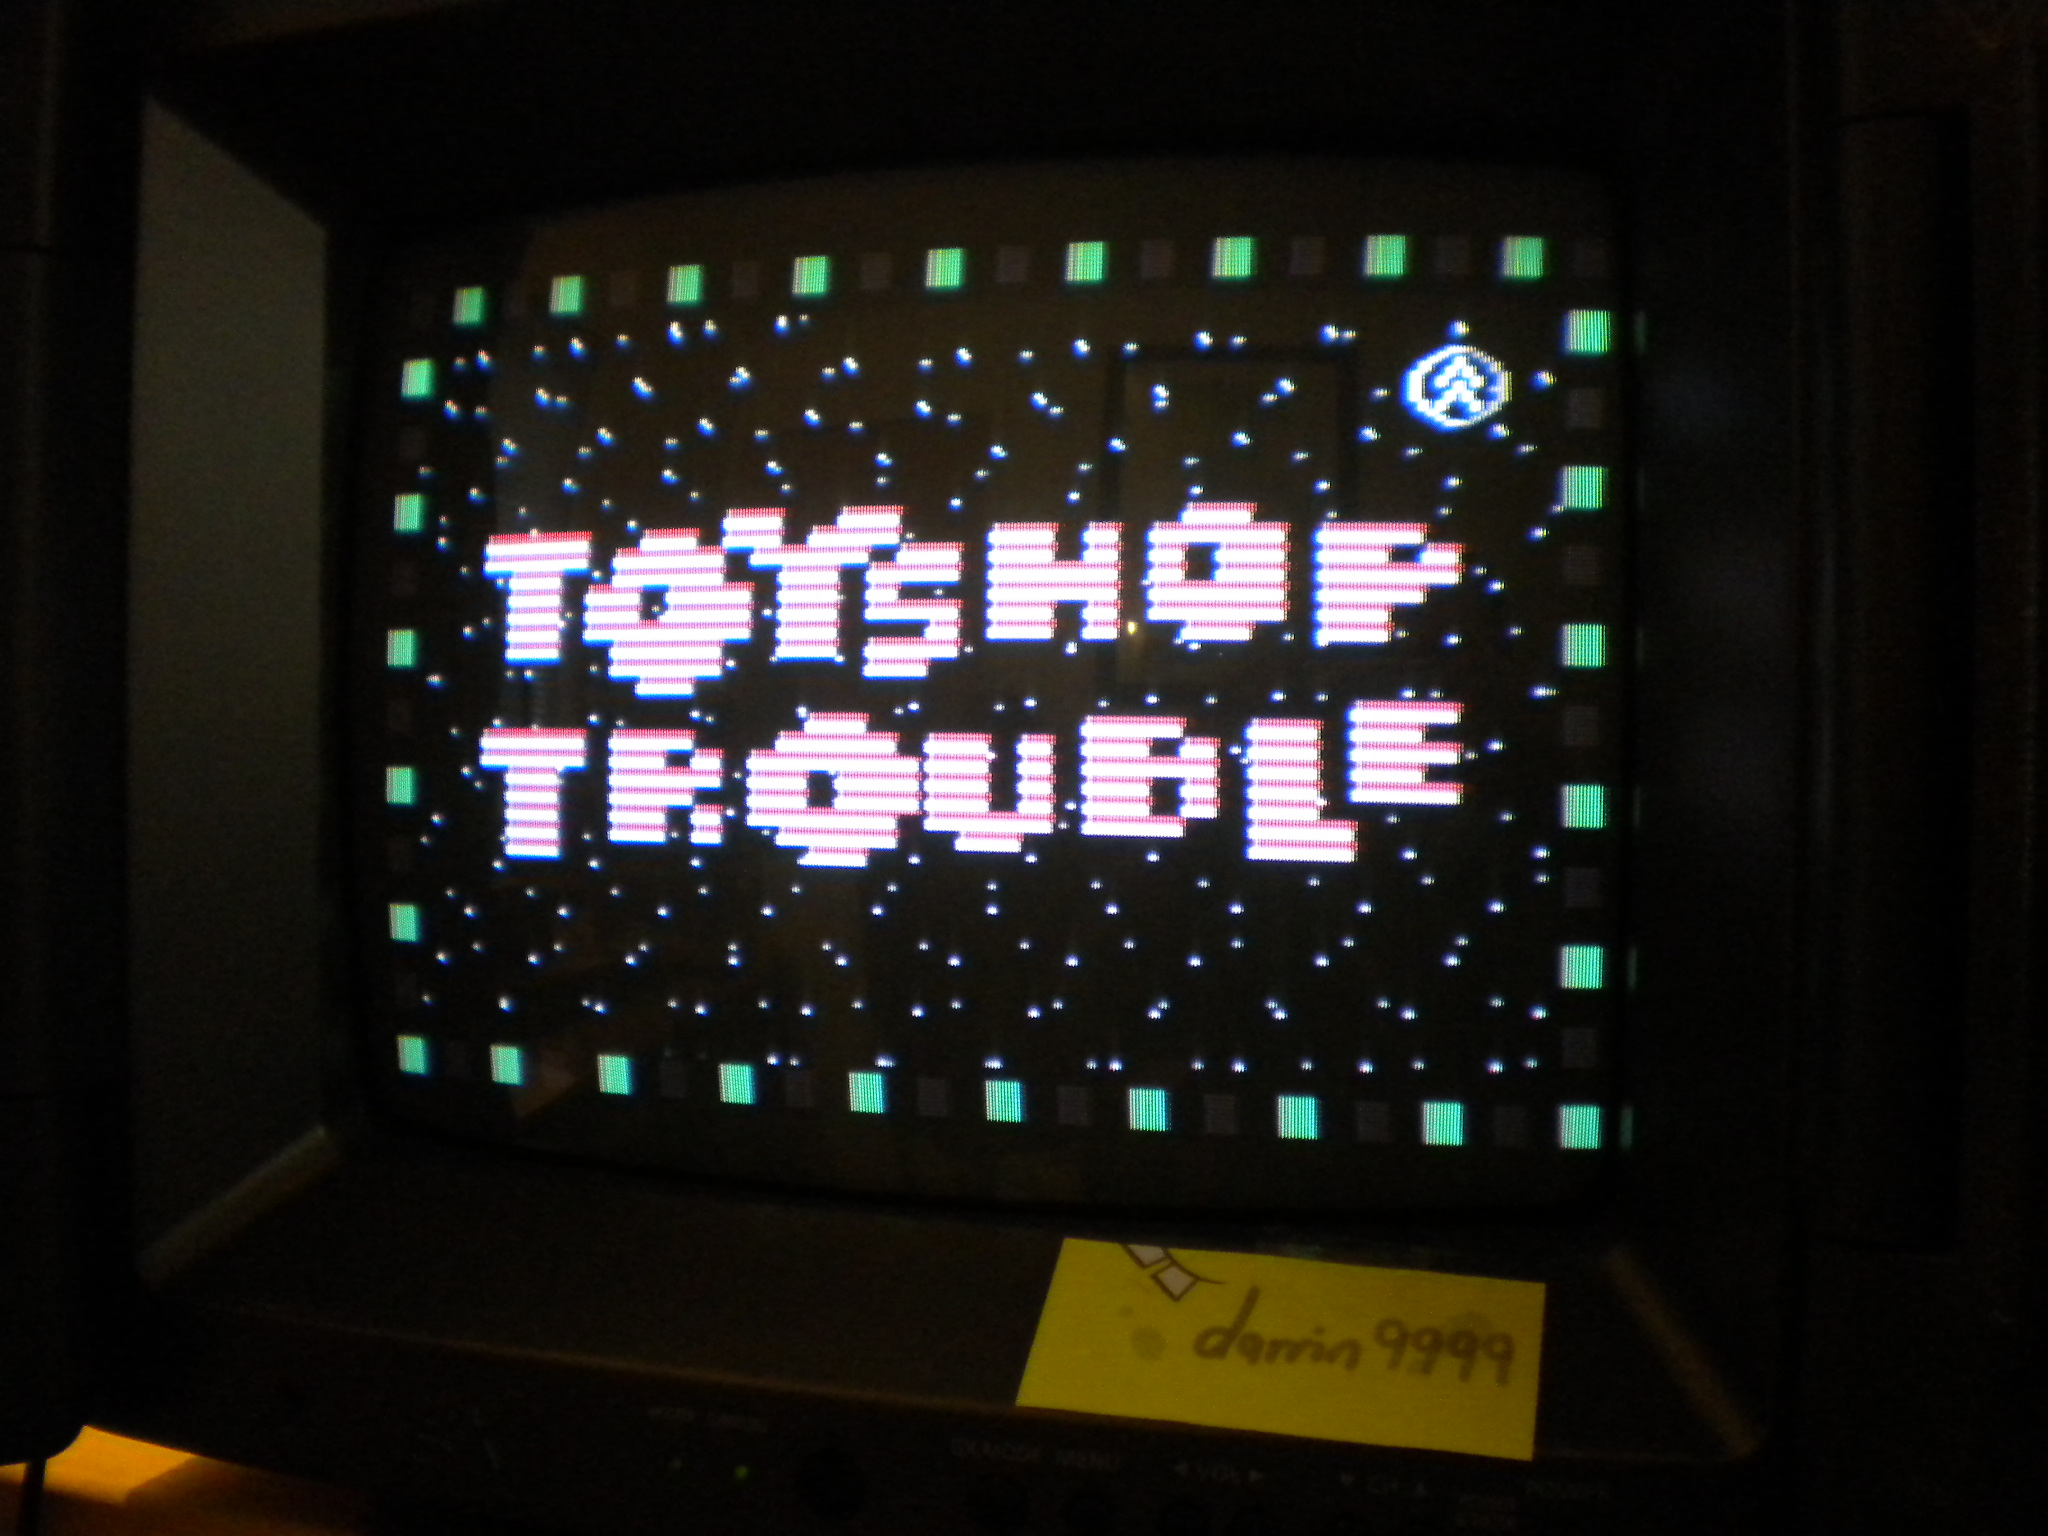 Toyshop Trouble 797 points